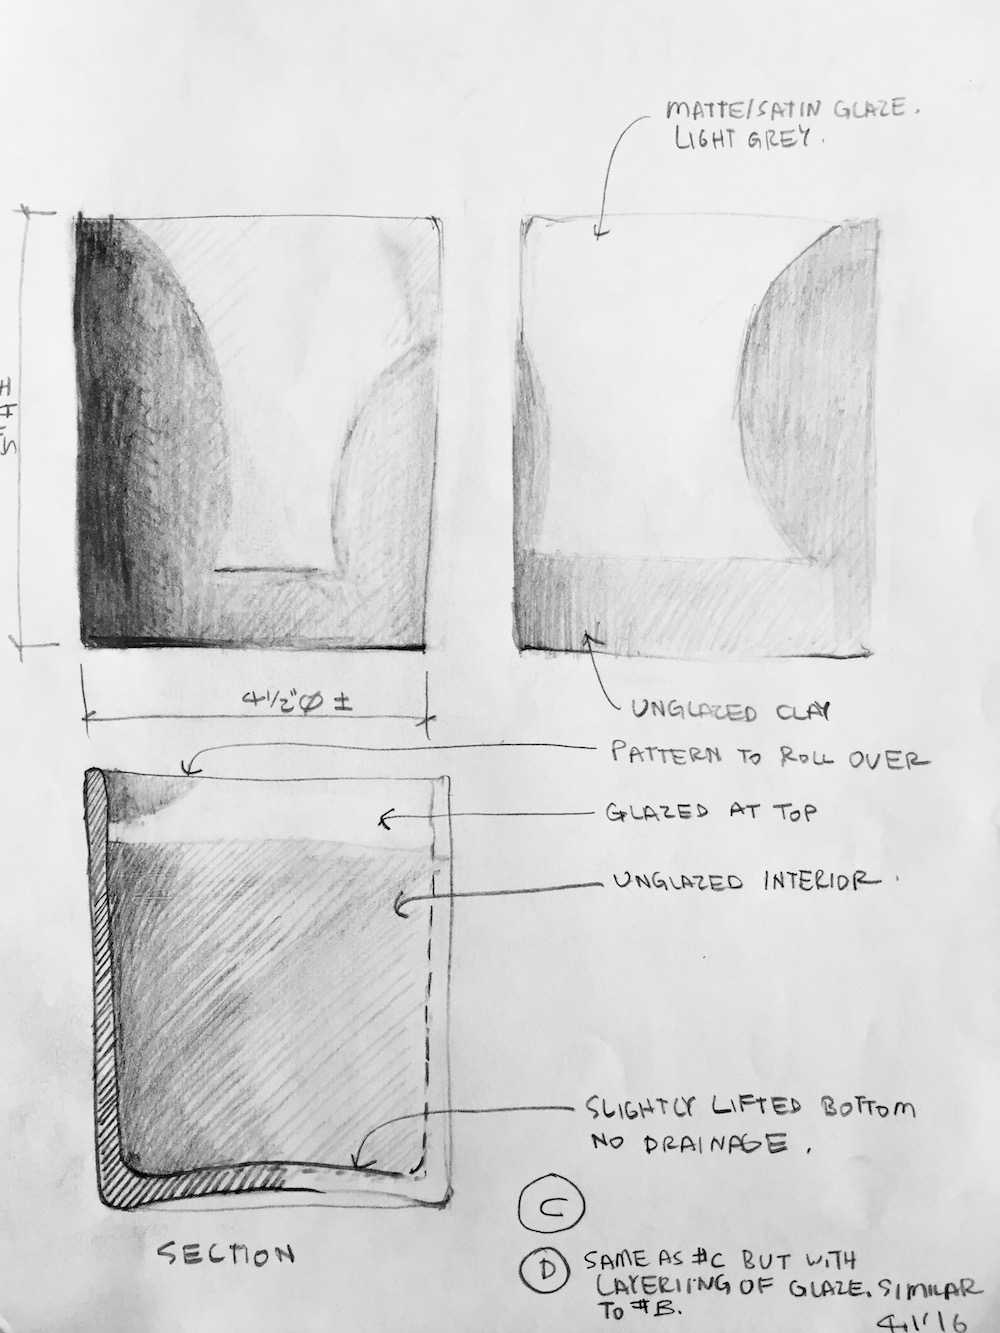 Schematic sketches showing the initial finish and size ideas in addition to form study models were made prior to prototype production.